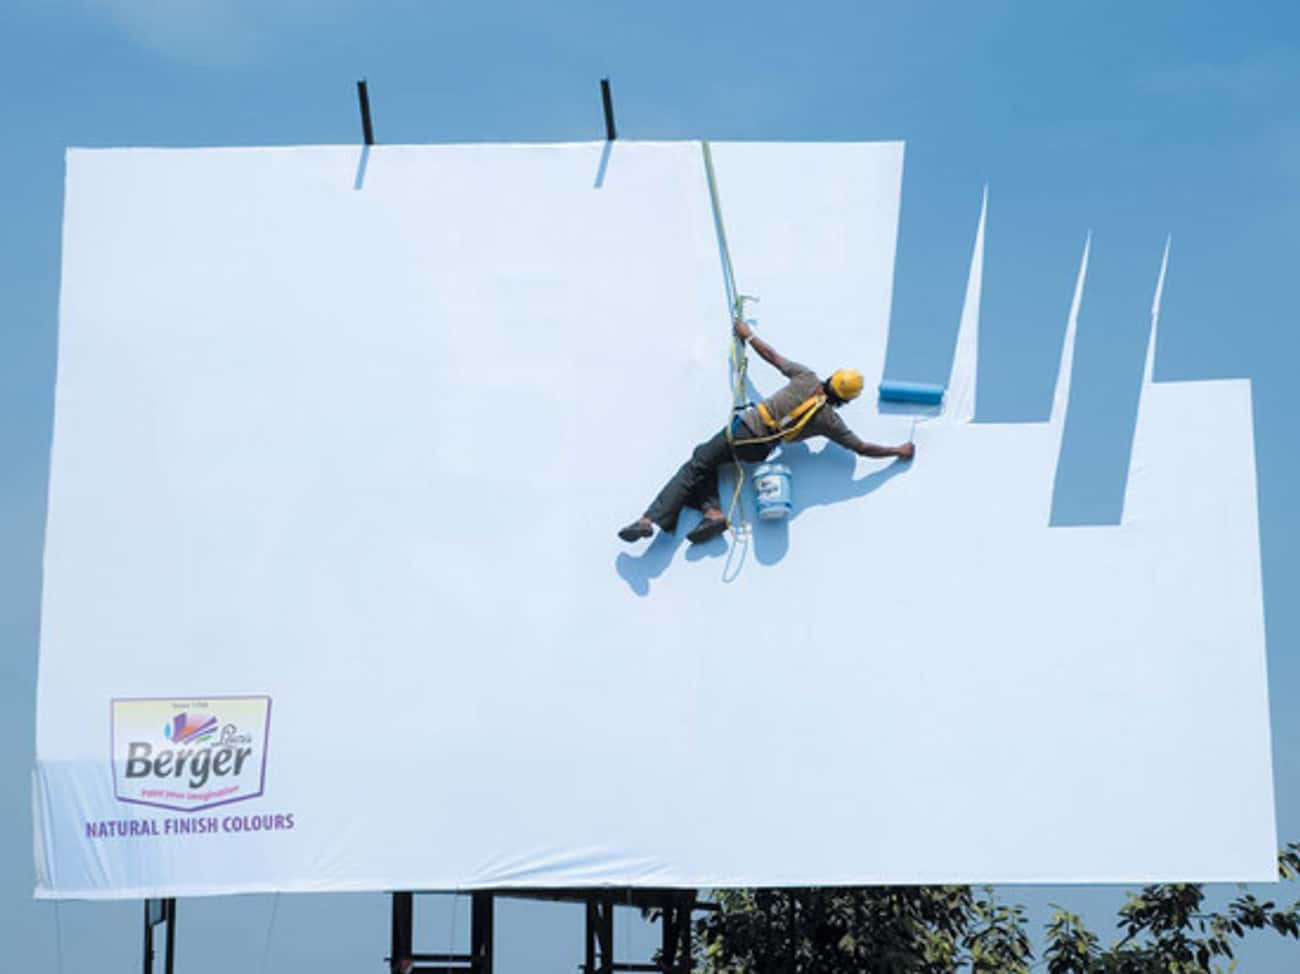 Super Clever Ad For 'Sky Color is listed (or ranked) 4 on the list Awesome Outdoor Advertisements